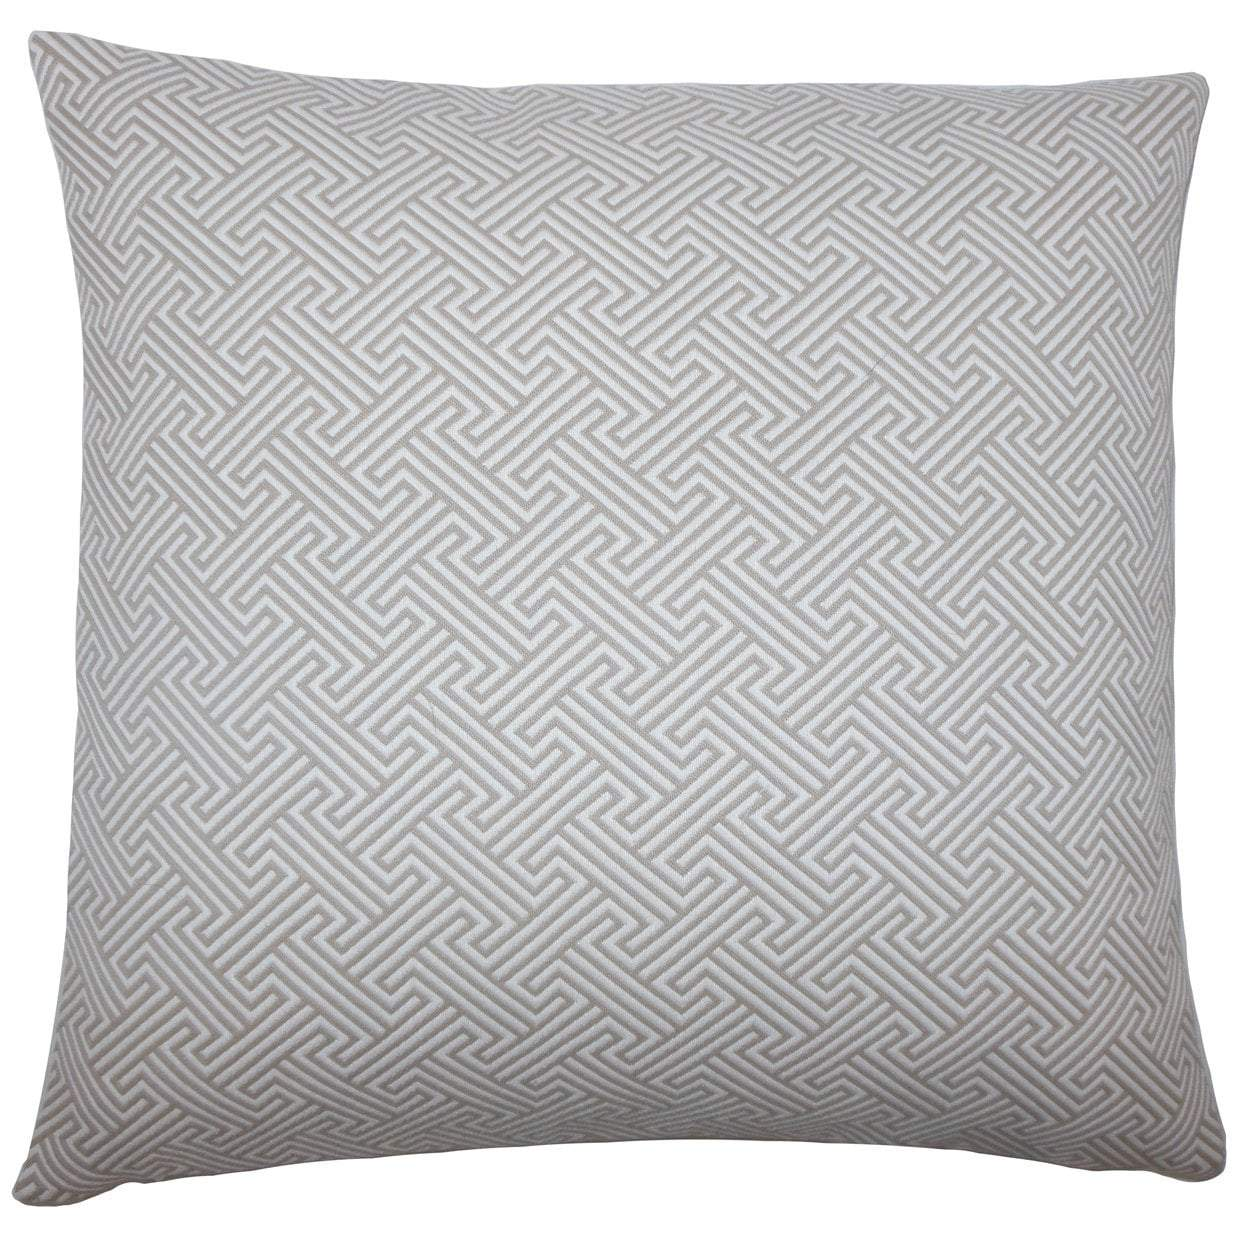 Gray Cotton Geometric Contemporary Throw Pillow Cover